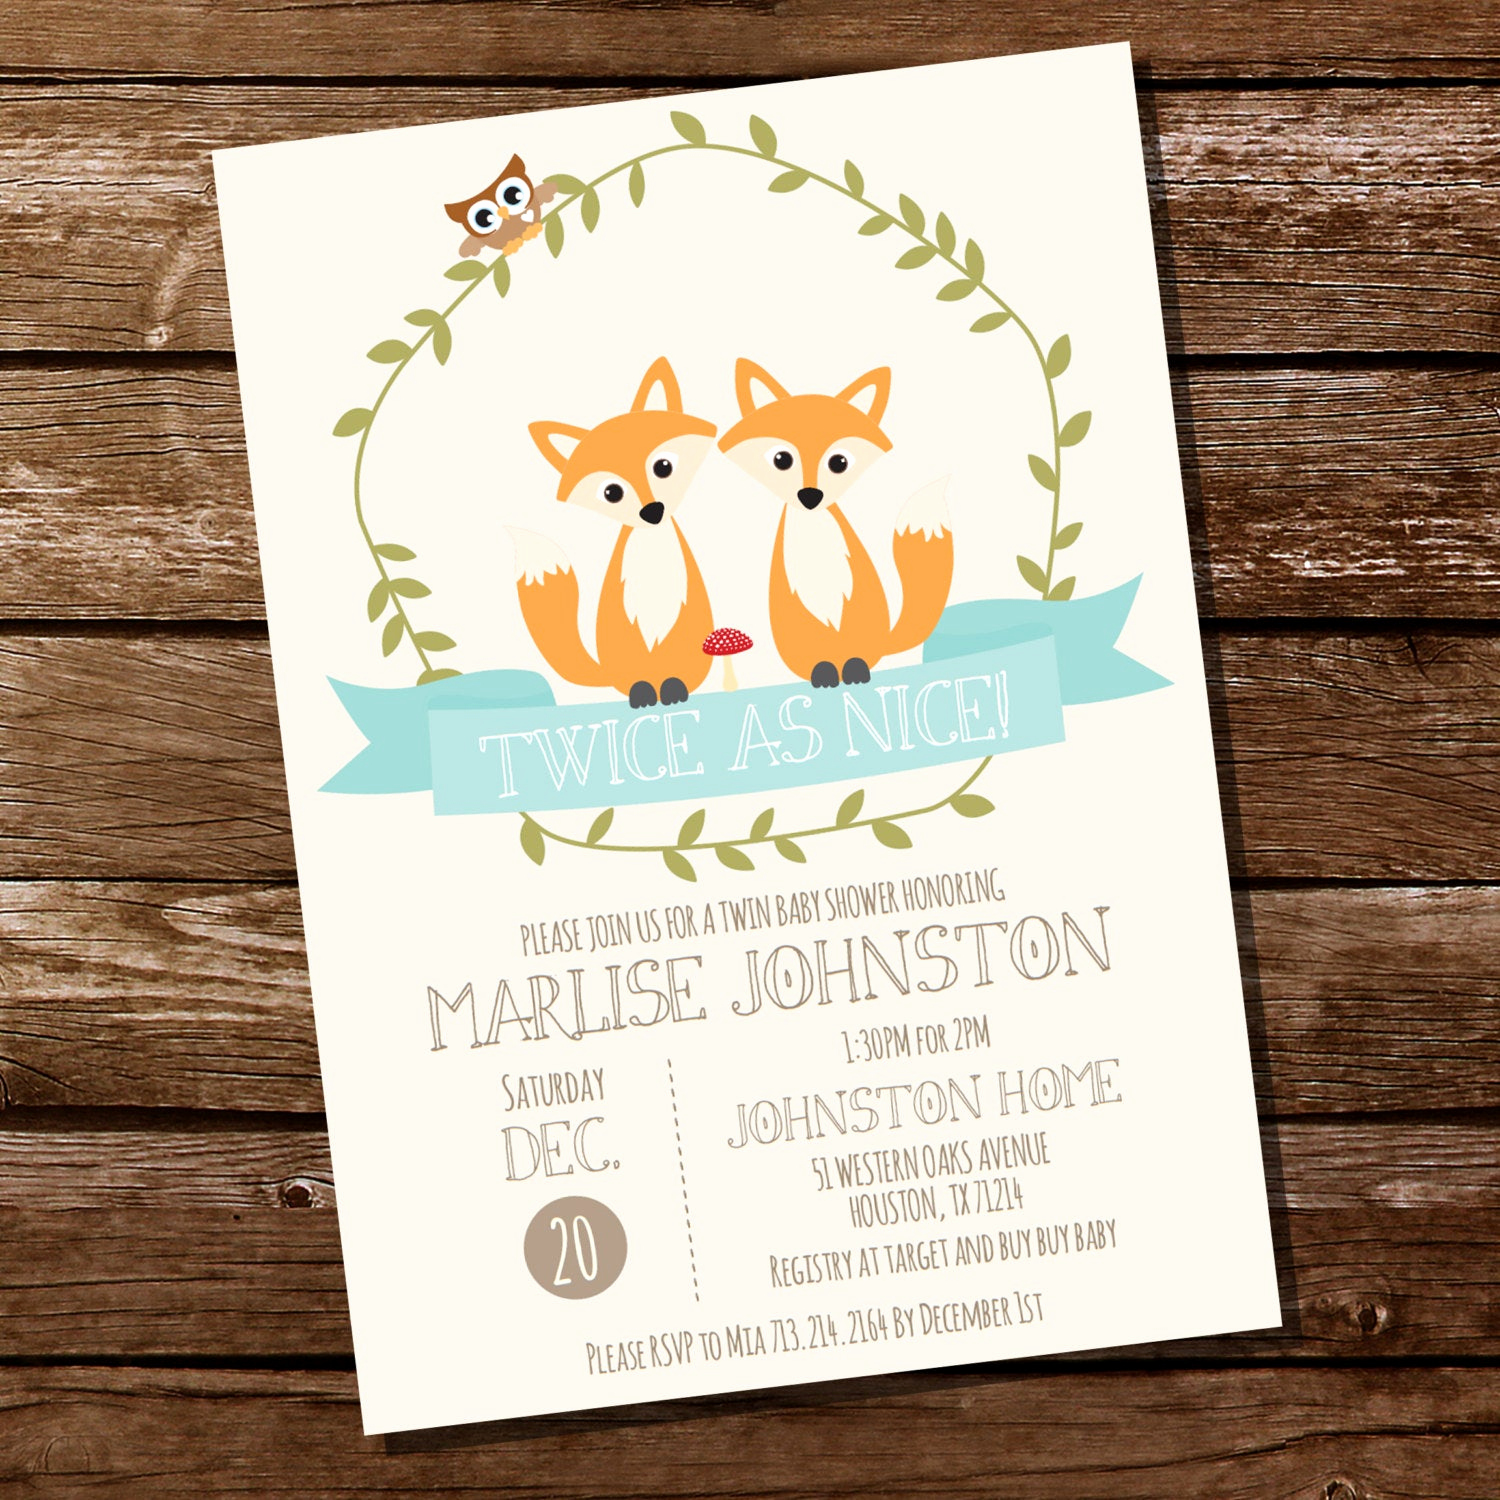 Woodland Baby Shower Invitation Lovely Woodland Twin Baby Shower Invitation for A Boy or Girl